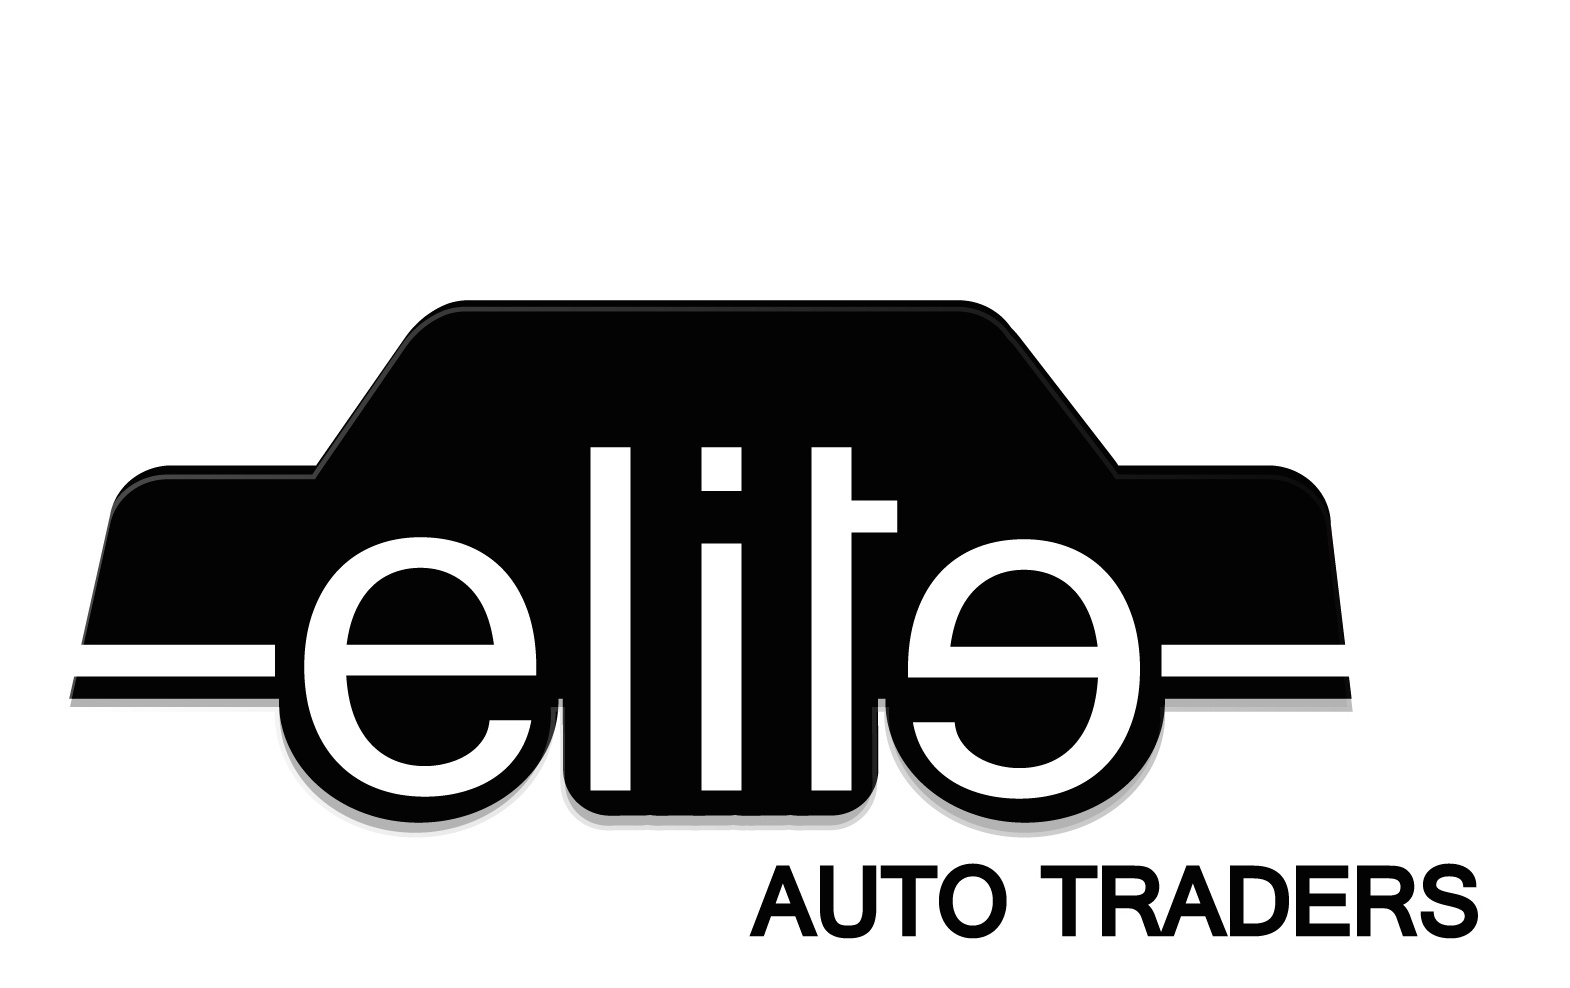 Elite Auto Traders - Houston, TX: Read Consumer reviews, Browse Used ...